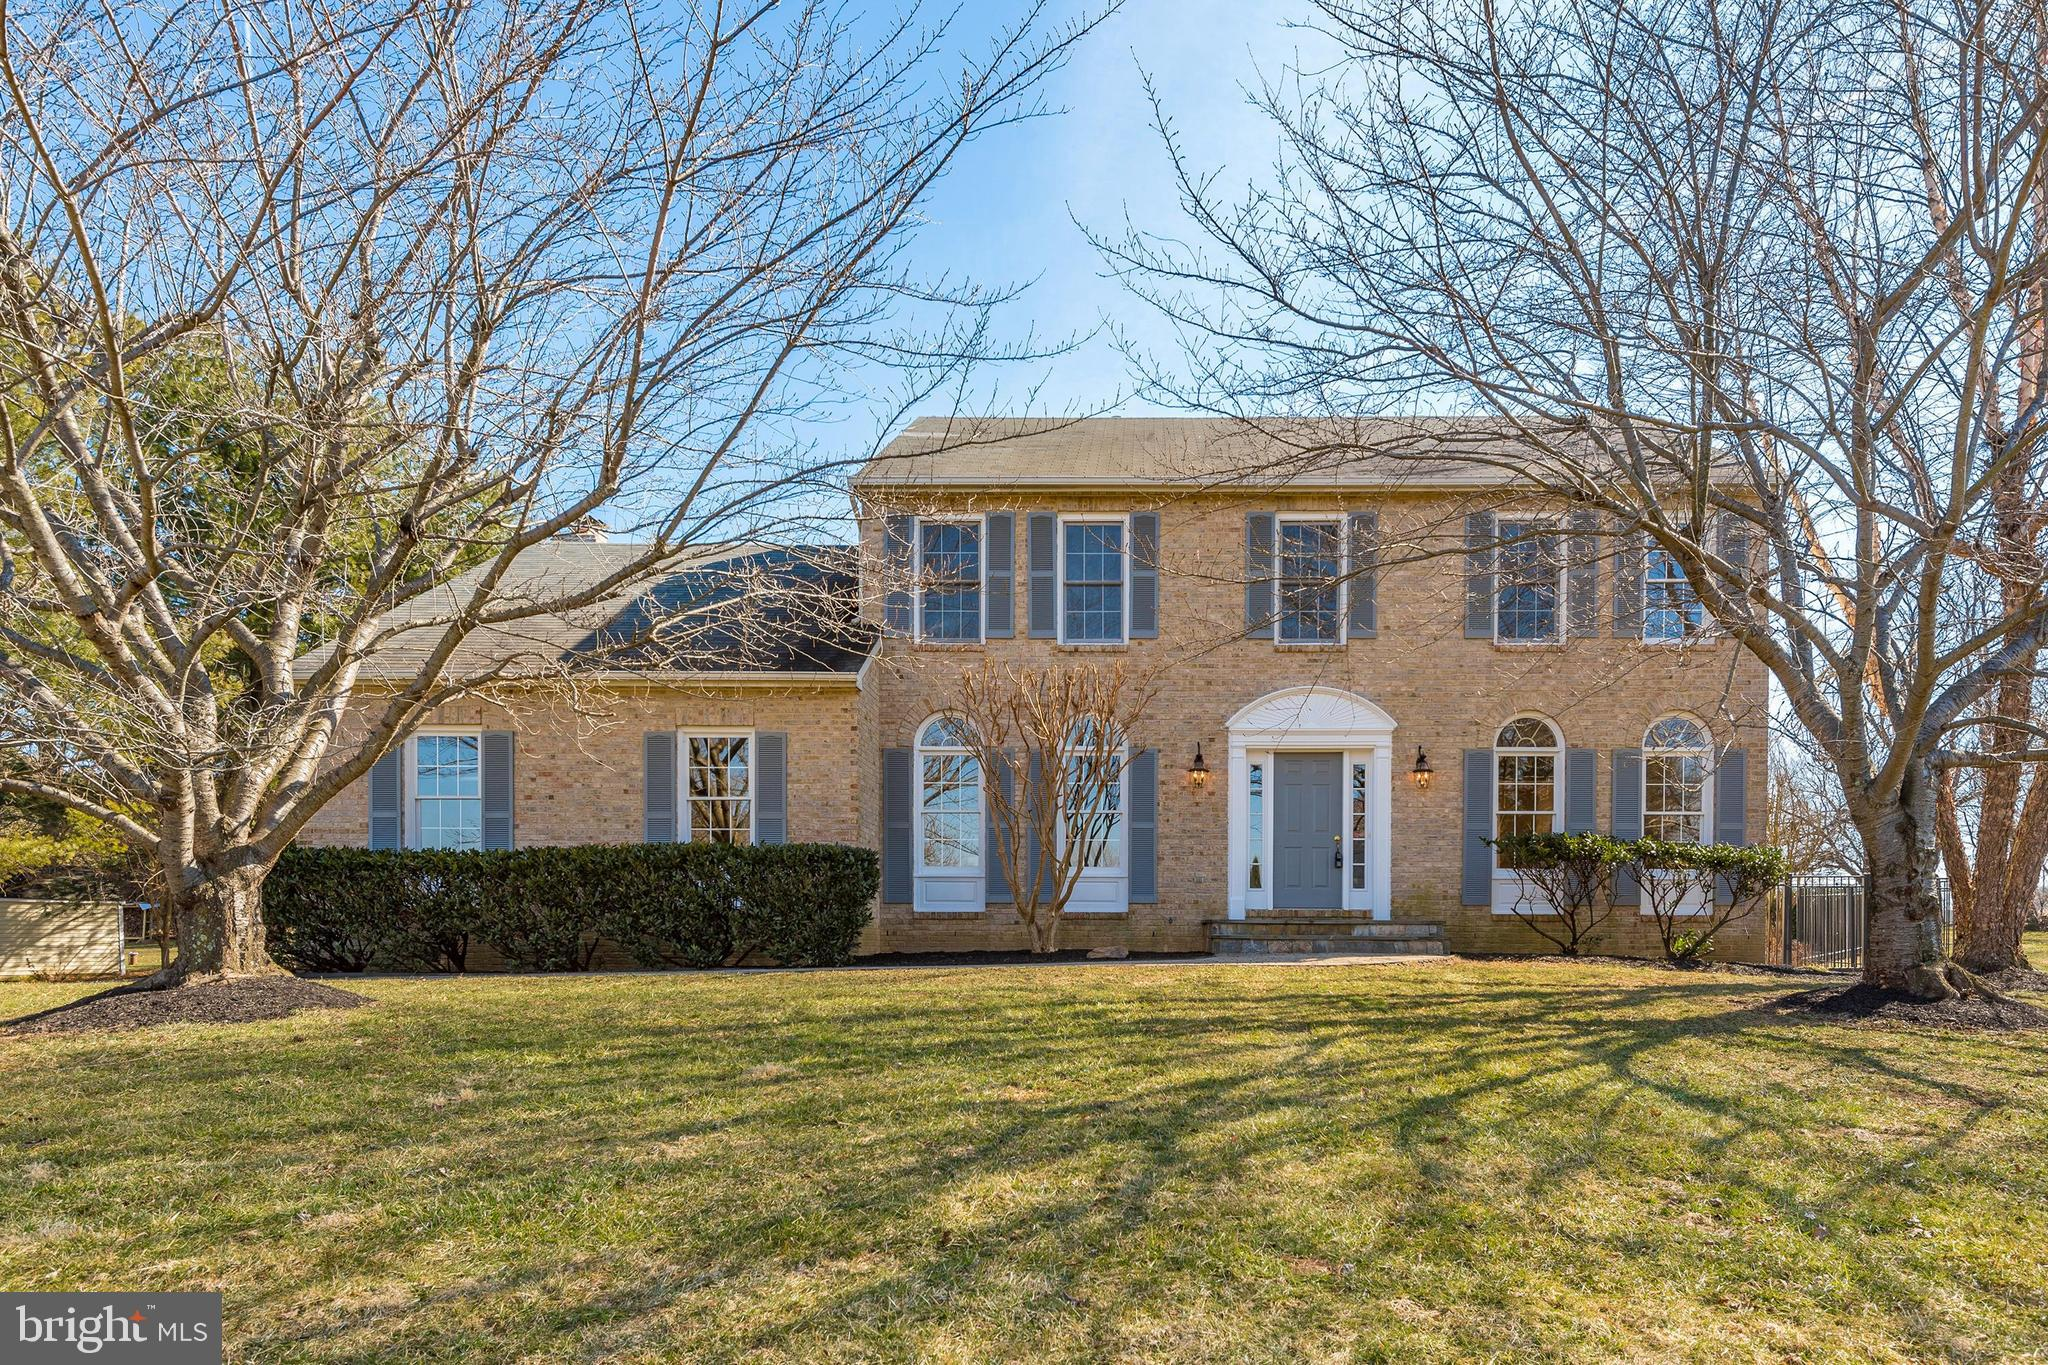 11722 MORNING STAR DRIVE, GERMANTOWN, MD 20876